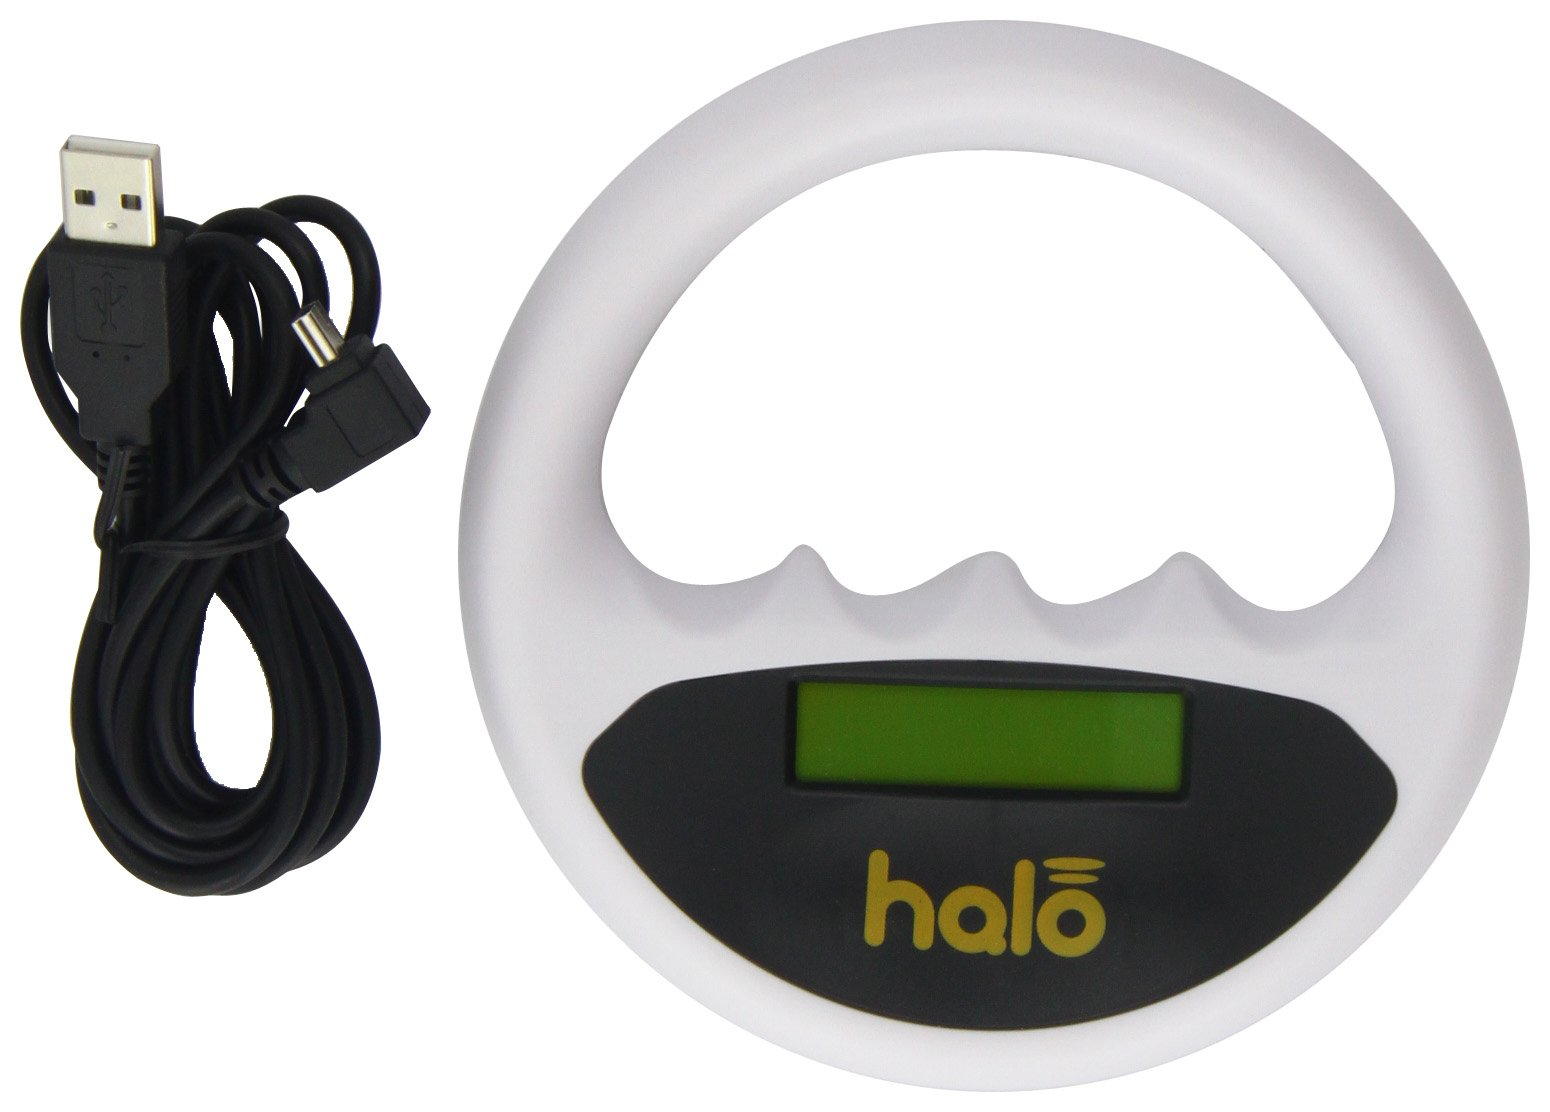 Pet Technology Store Halo Microchip Scanner, White